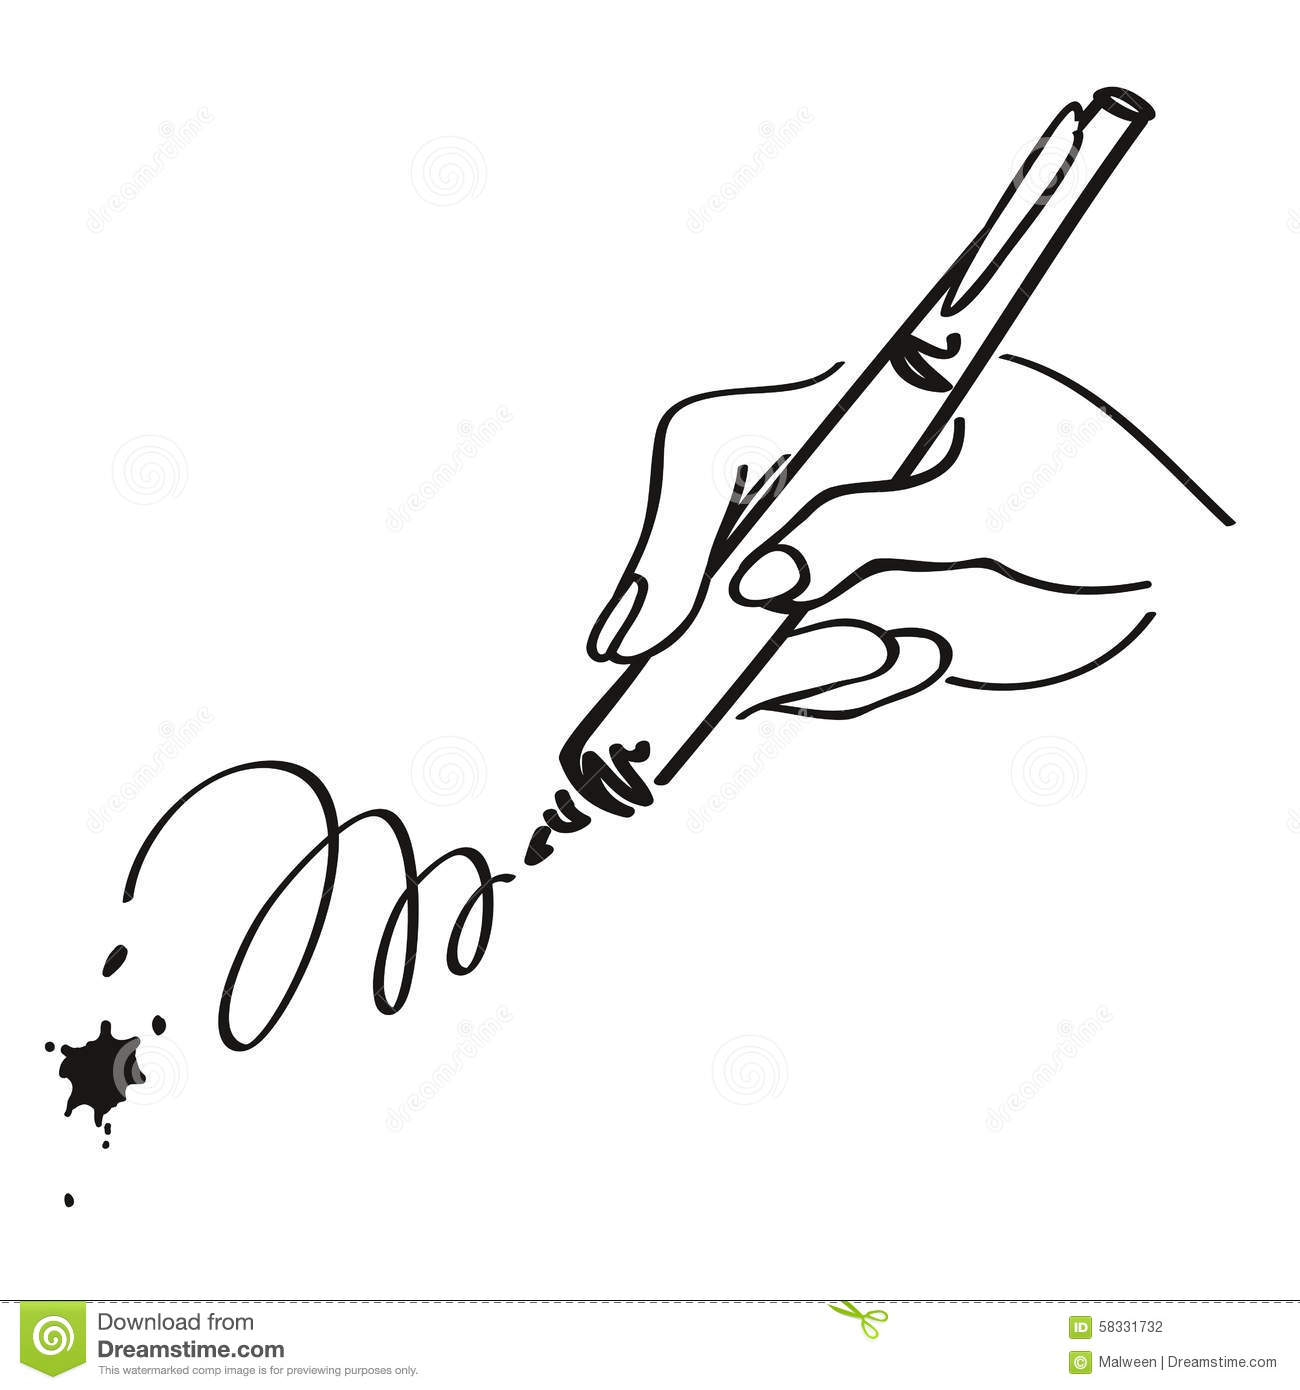 Hand writing with a pen. Vector outline illustration